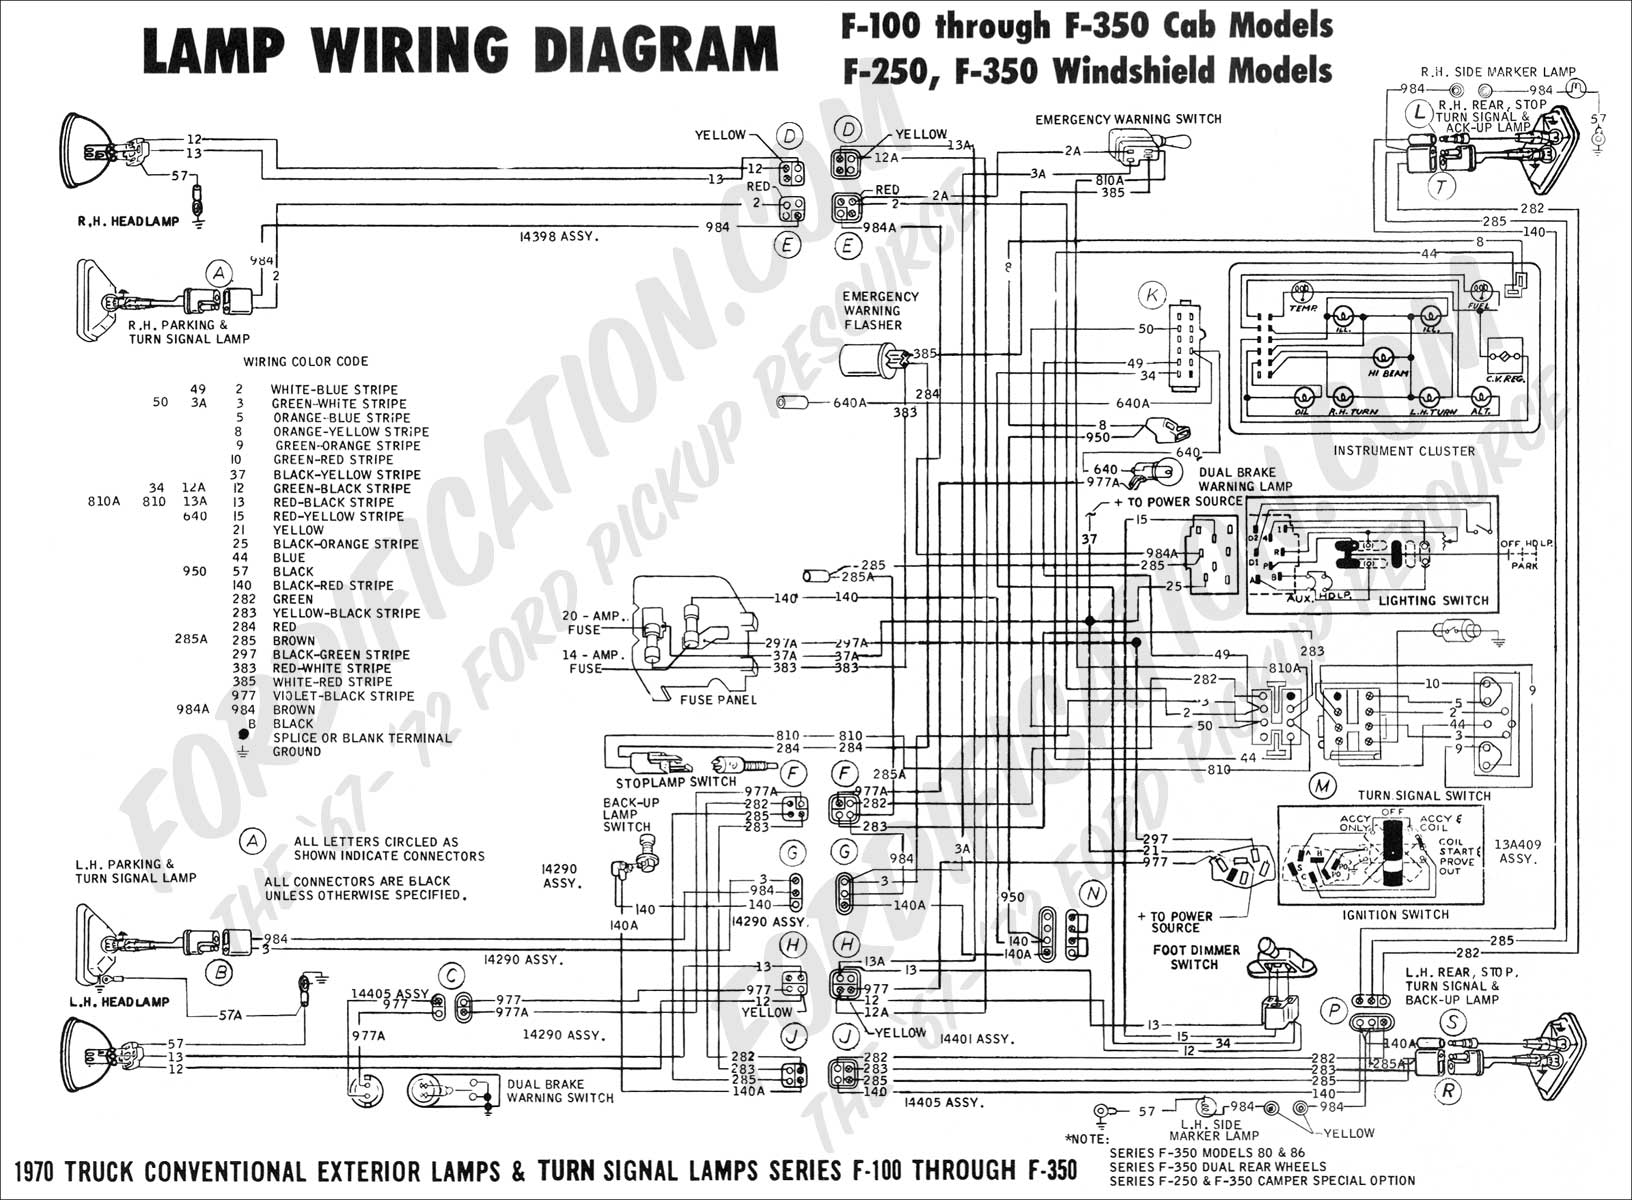 hight resolution of 95 f250 wiring diagram inside schematic wiring diagrams 96 f150 fuse box diagram wording and 1996 ford f 150 fuse box diagram